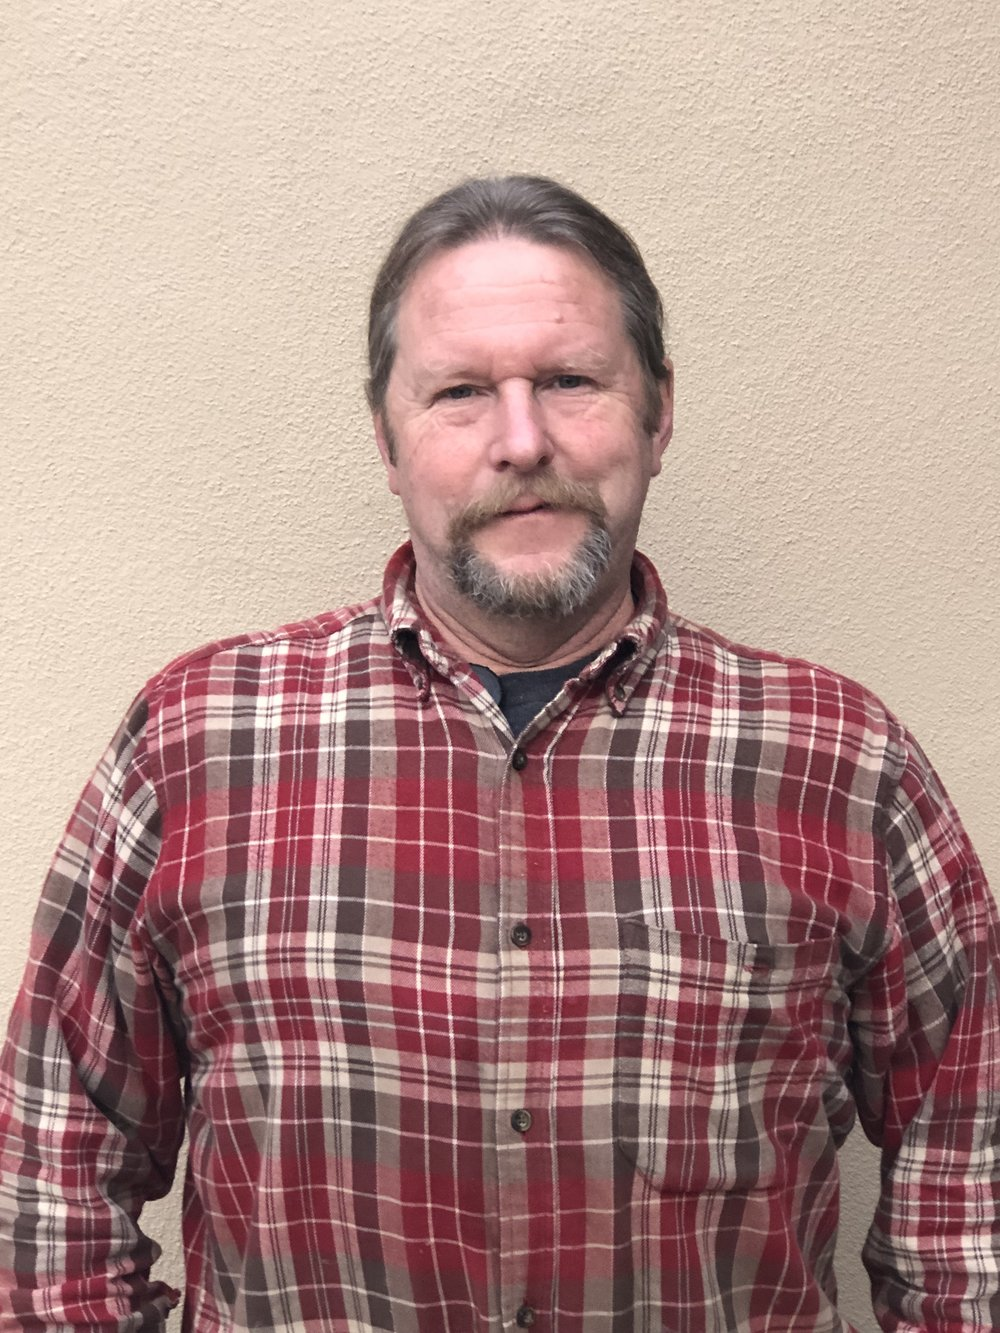 Bob Netzly - Bob is Hastings Construction Lead Carpenter and has been with us since 2017. Bob manages our larger projects from start to finish.Bob can be reached at: bob@hastingsconstruction.com